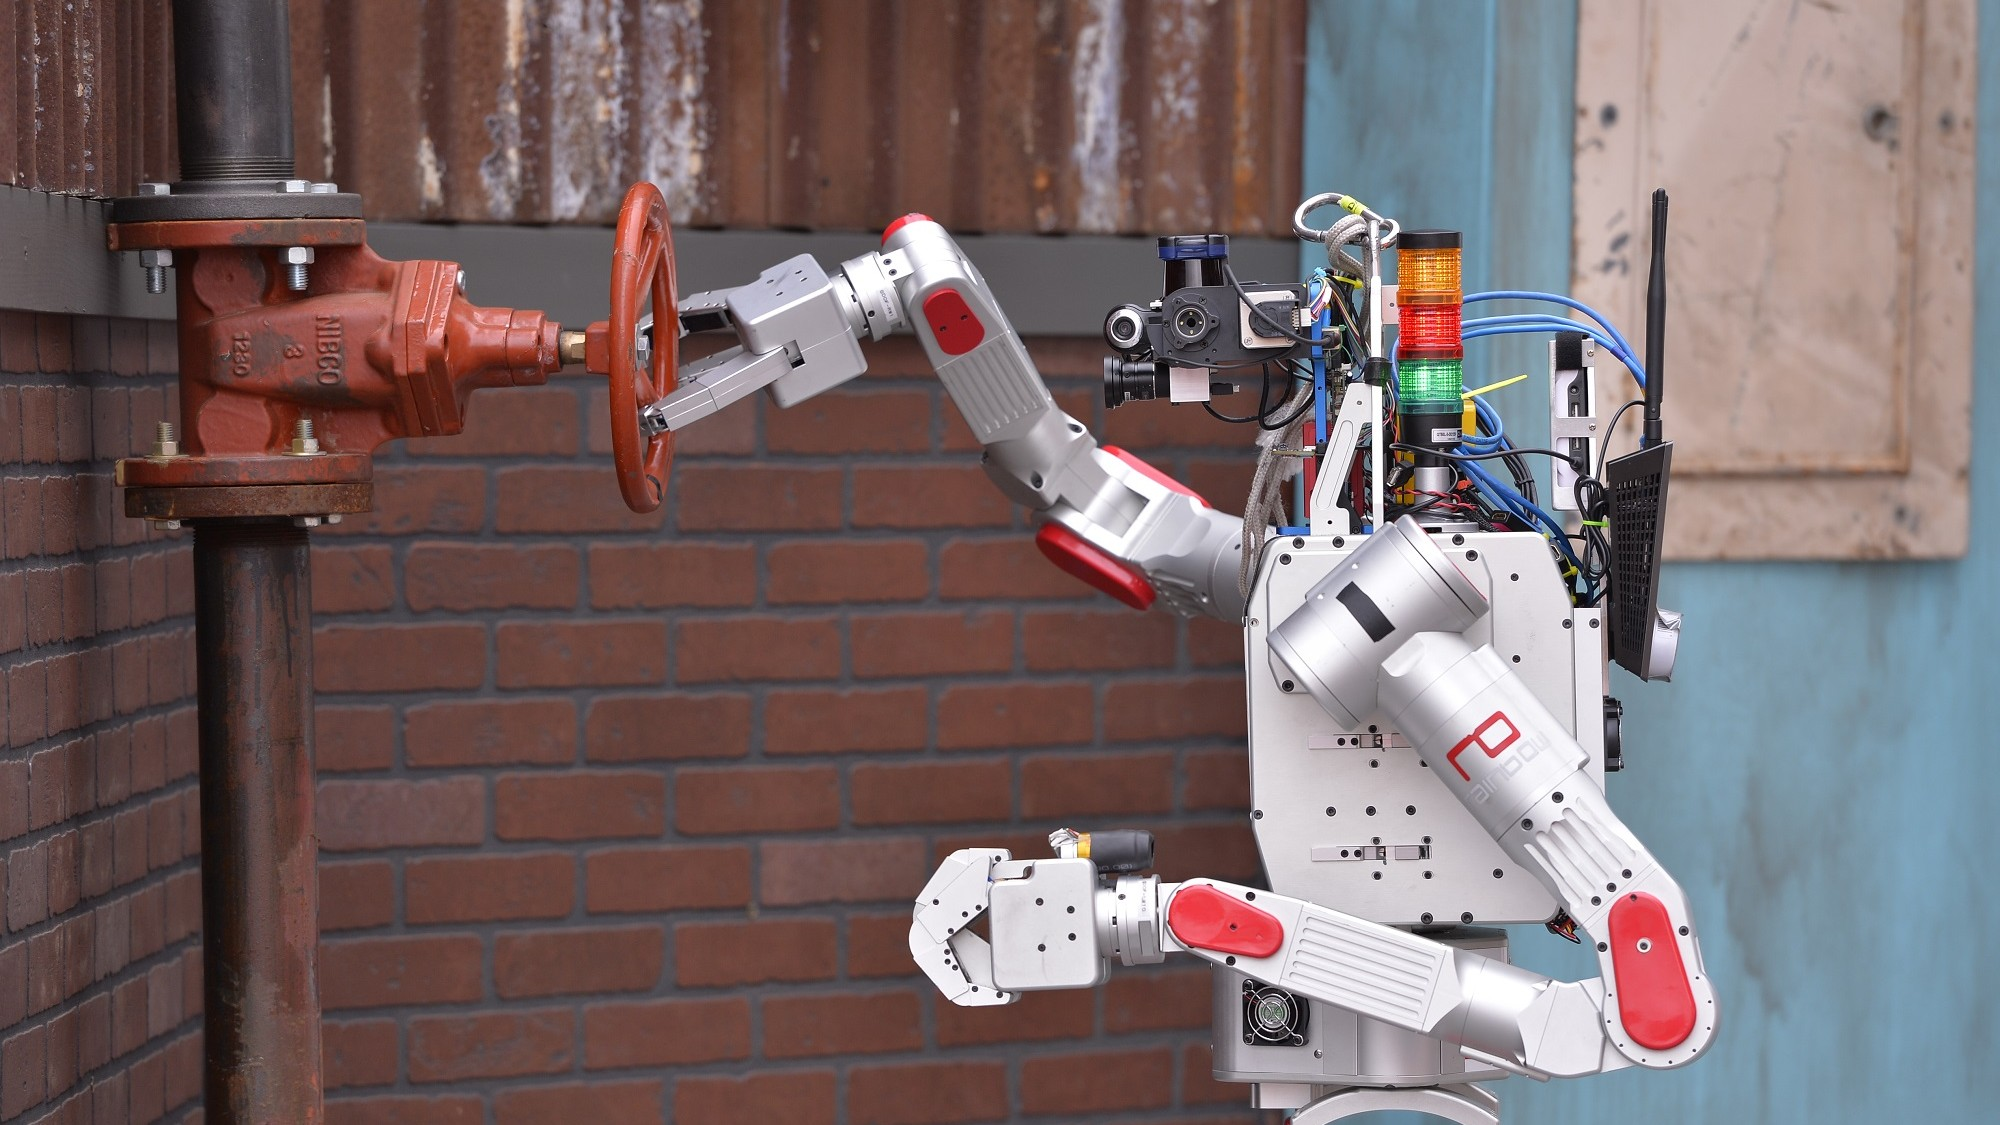 Watch These Rescue Robots Fail to Rescue Anything